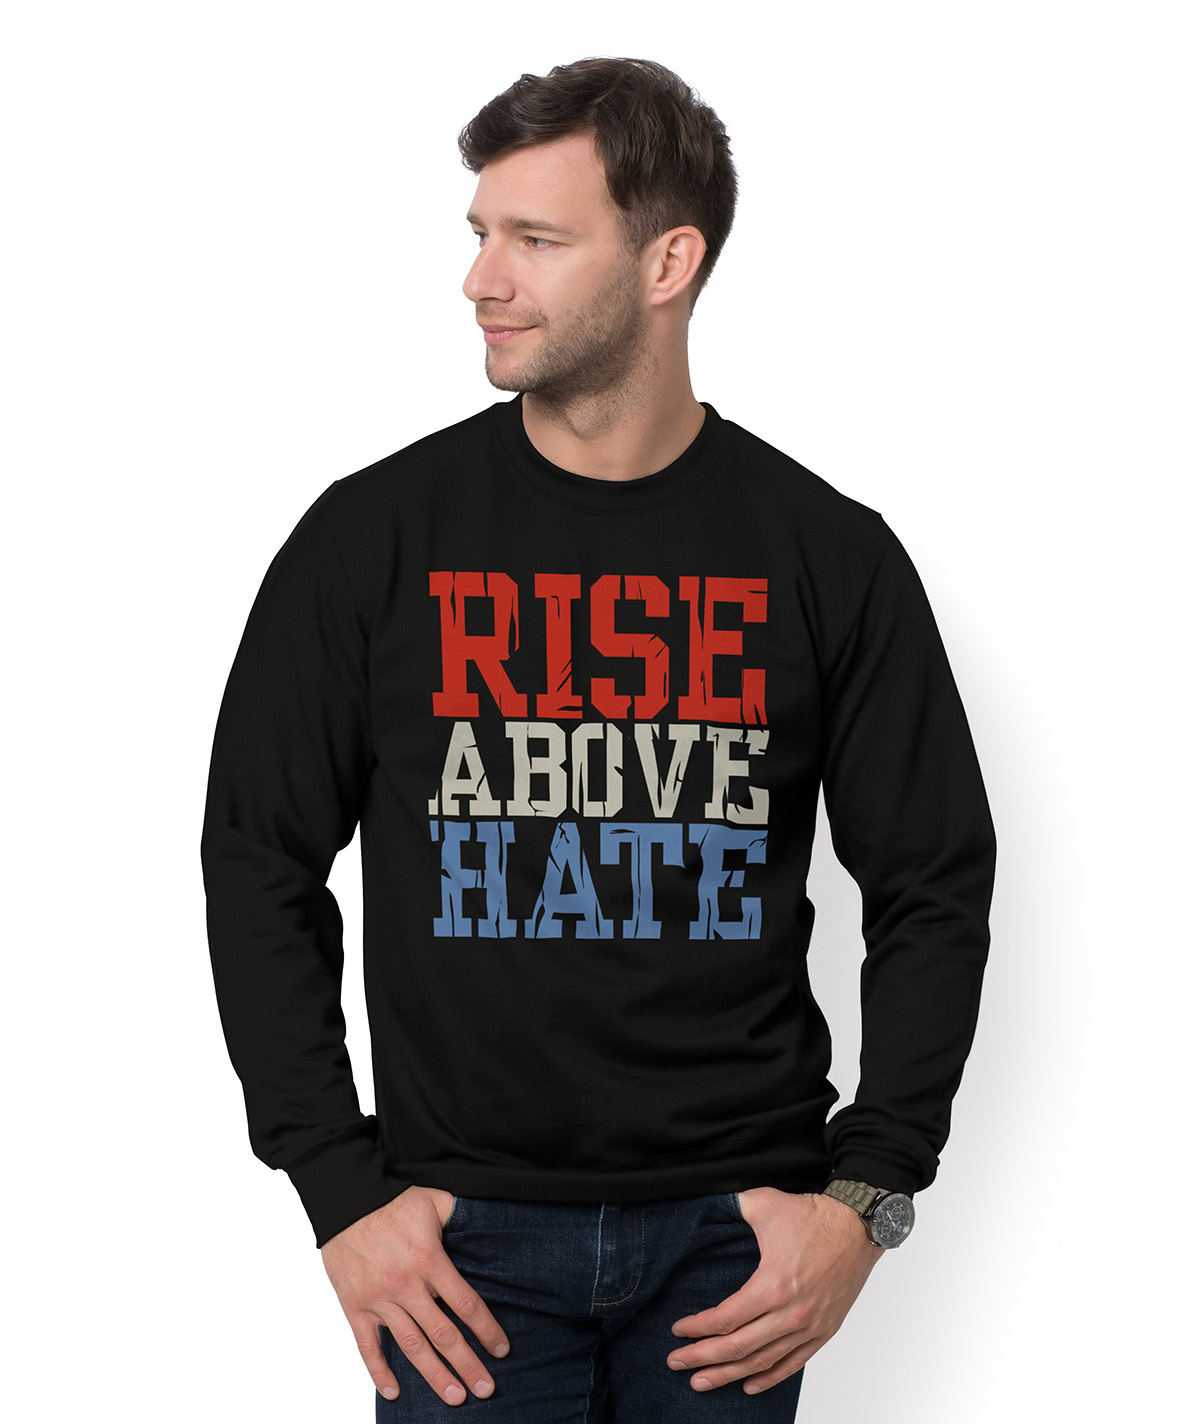 Bluza Rise above hate